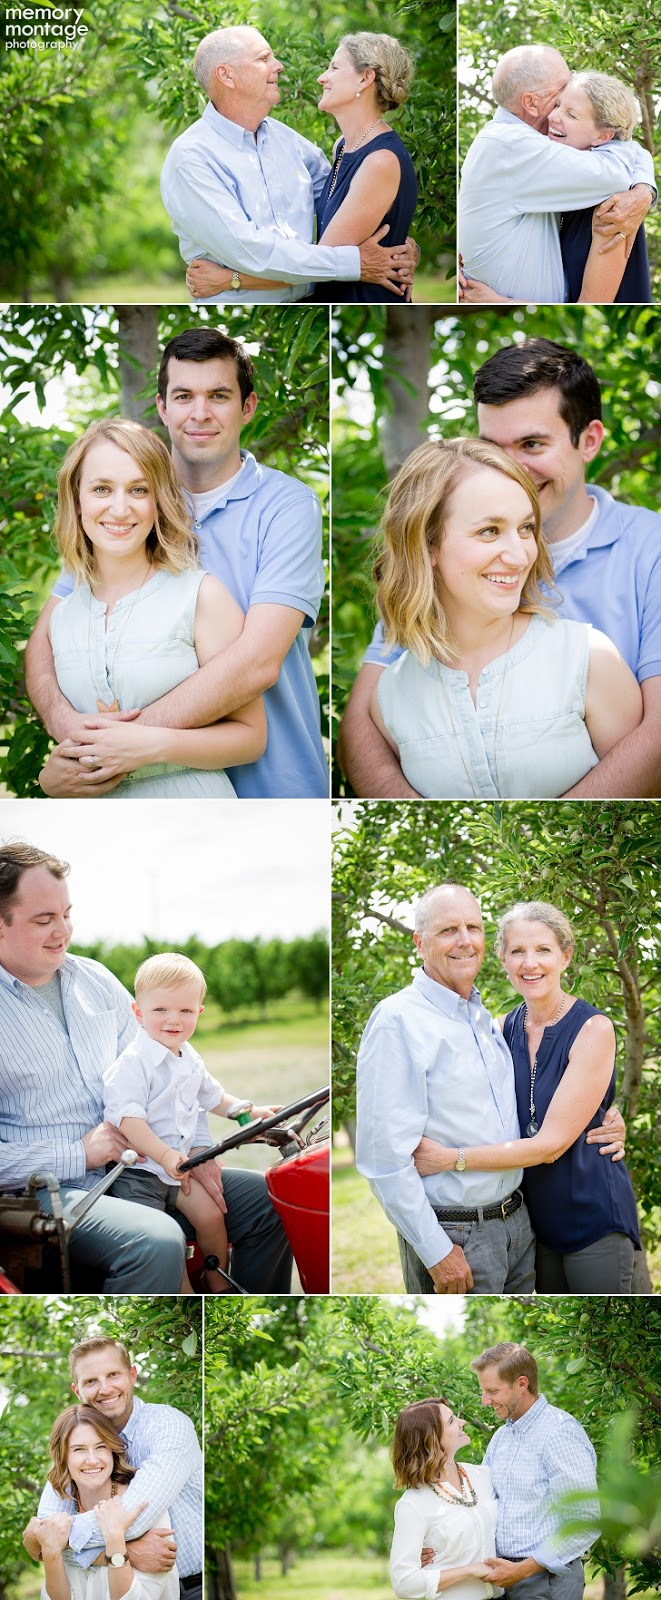 Yakima family photography, Yakima family photographyers, Yakima orchard session, memory montage photography